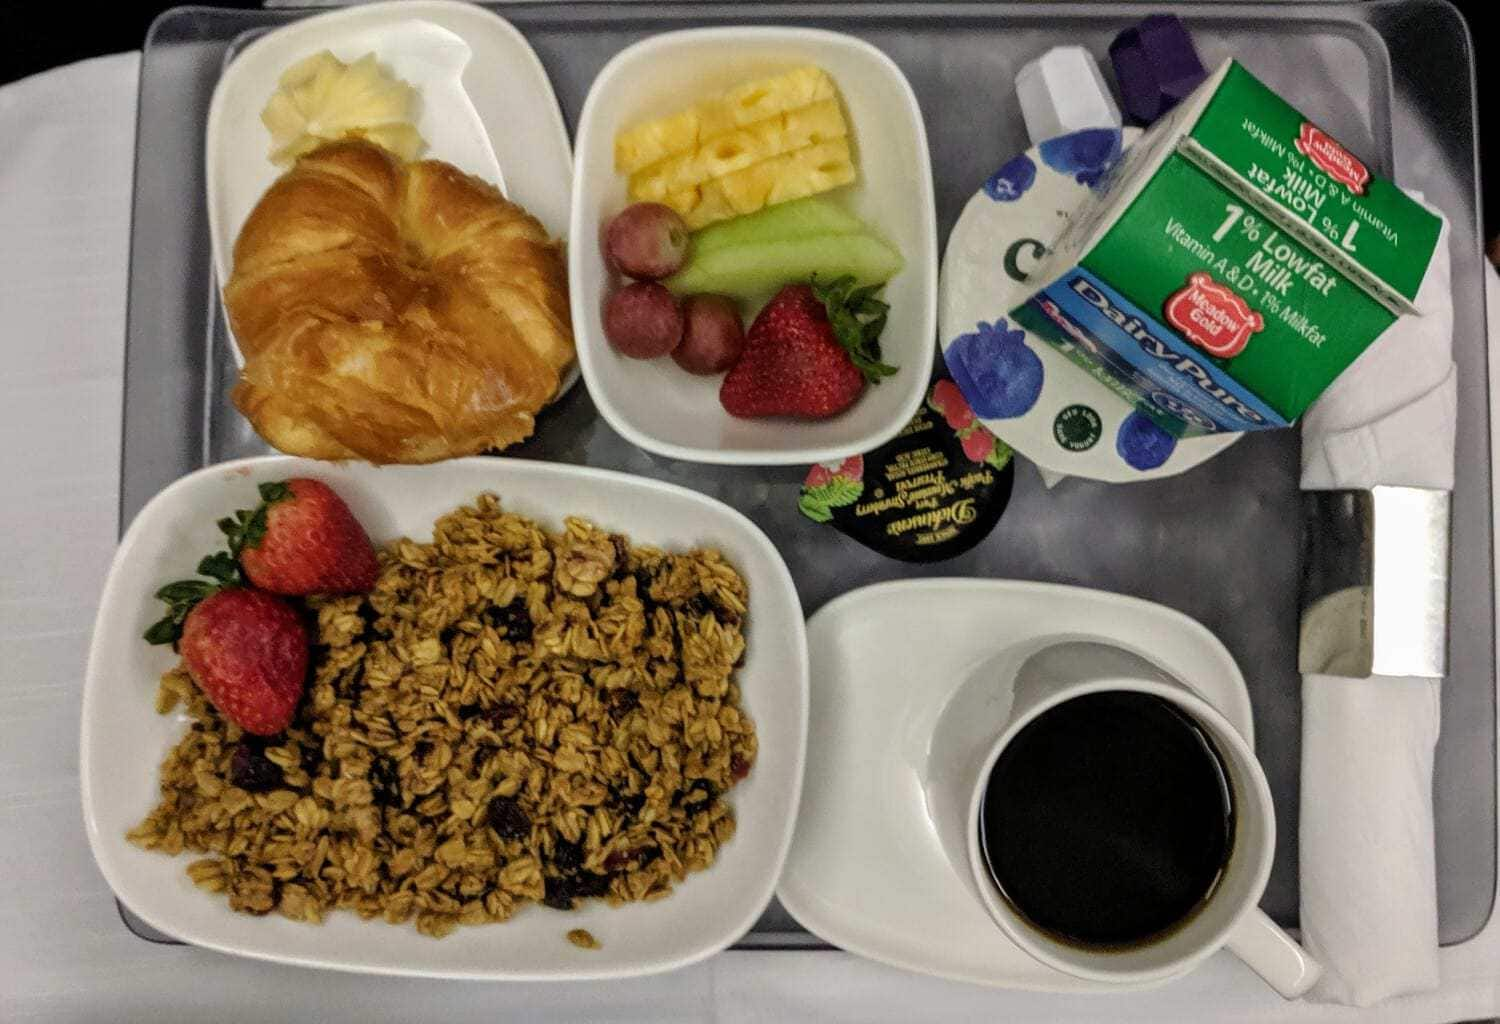 Hawaii to Atlanta (DL836) in Delta One Review: Not Worth It!